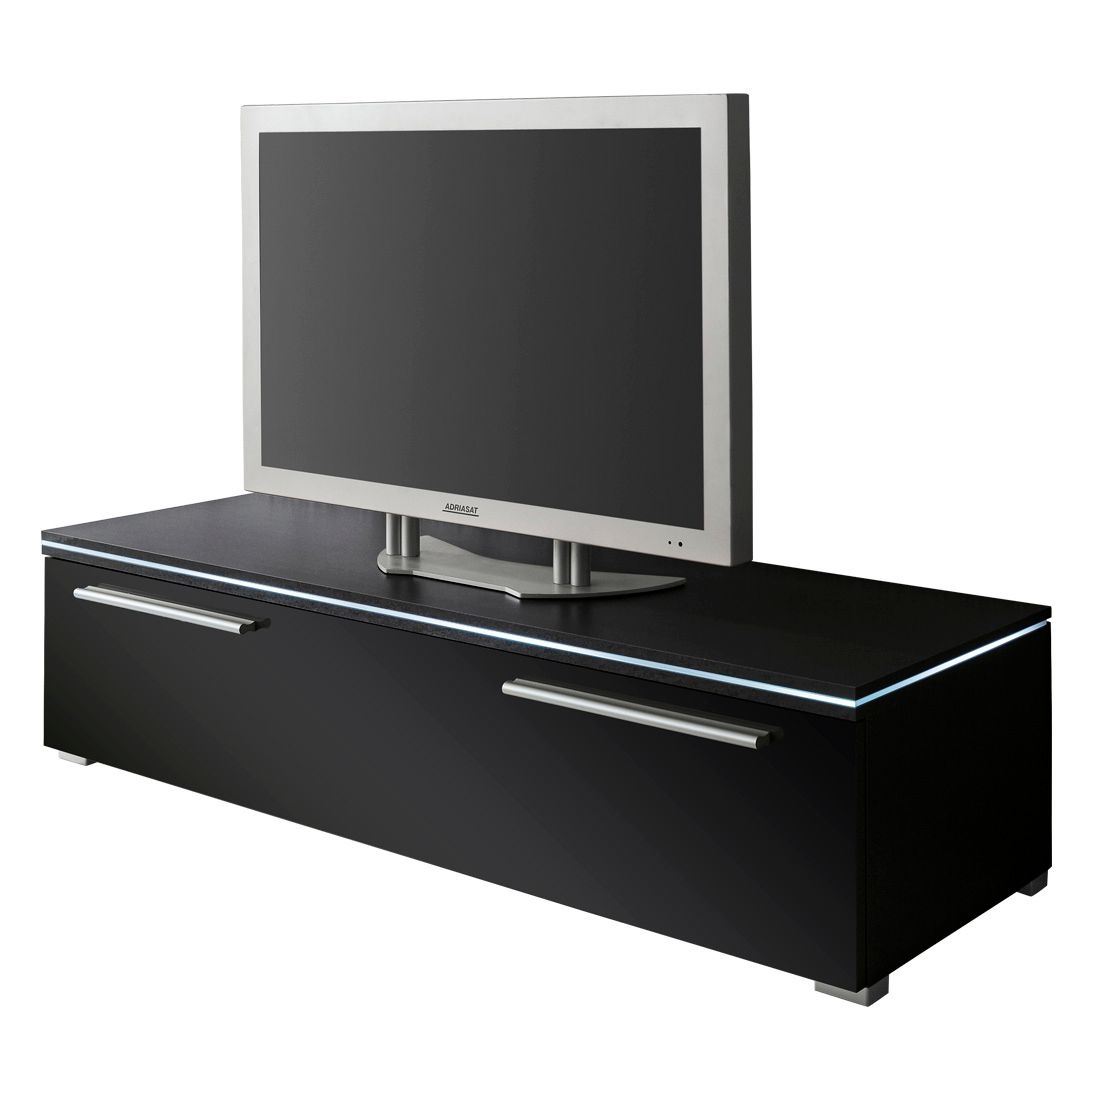 meuble tv meuble tv profondeur 30cm meuble tv profondeur 30cm trouvez meuble tv profondeur. Black Bedroom Furniture Sets. Home Design Ideas